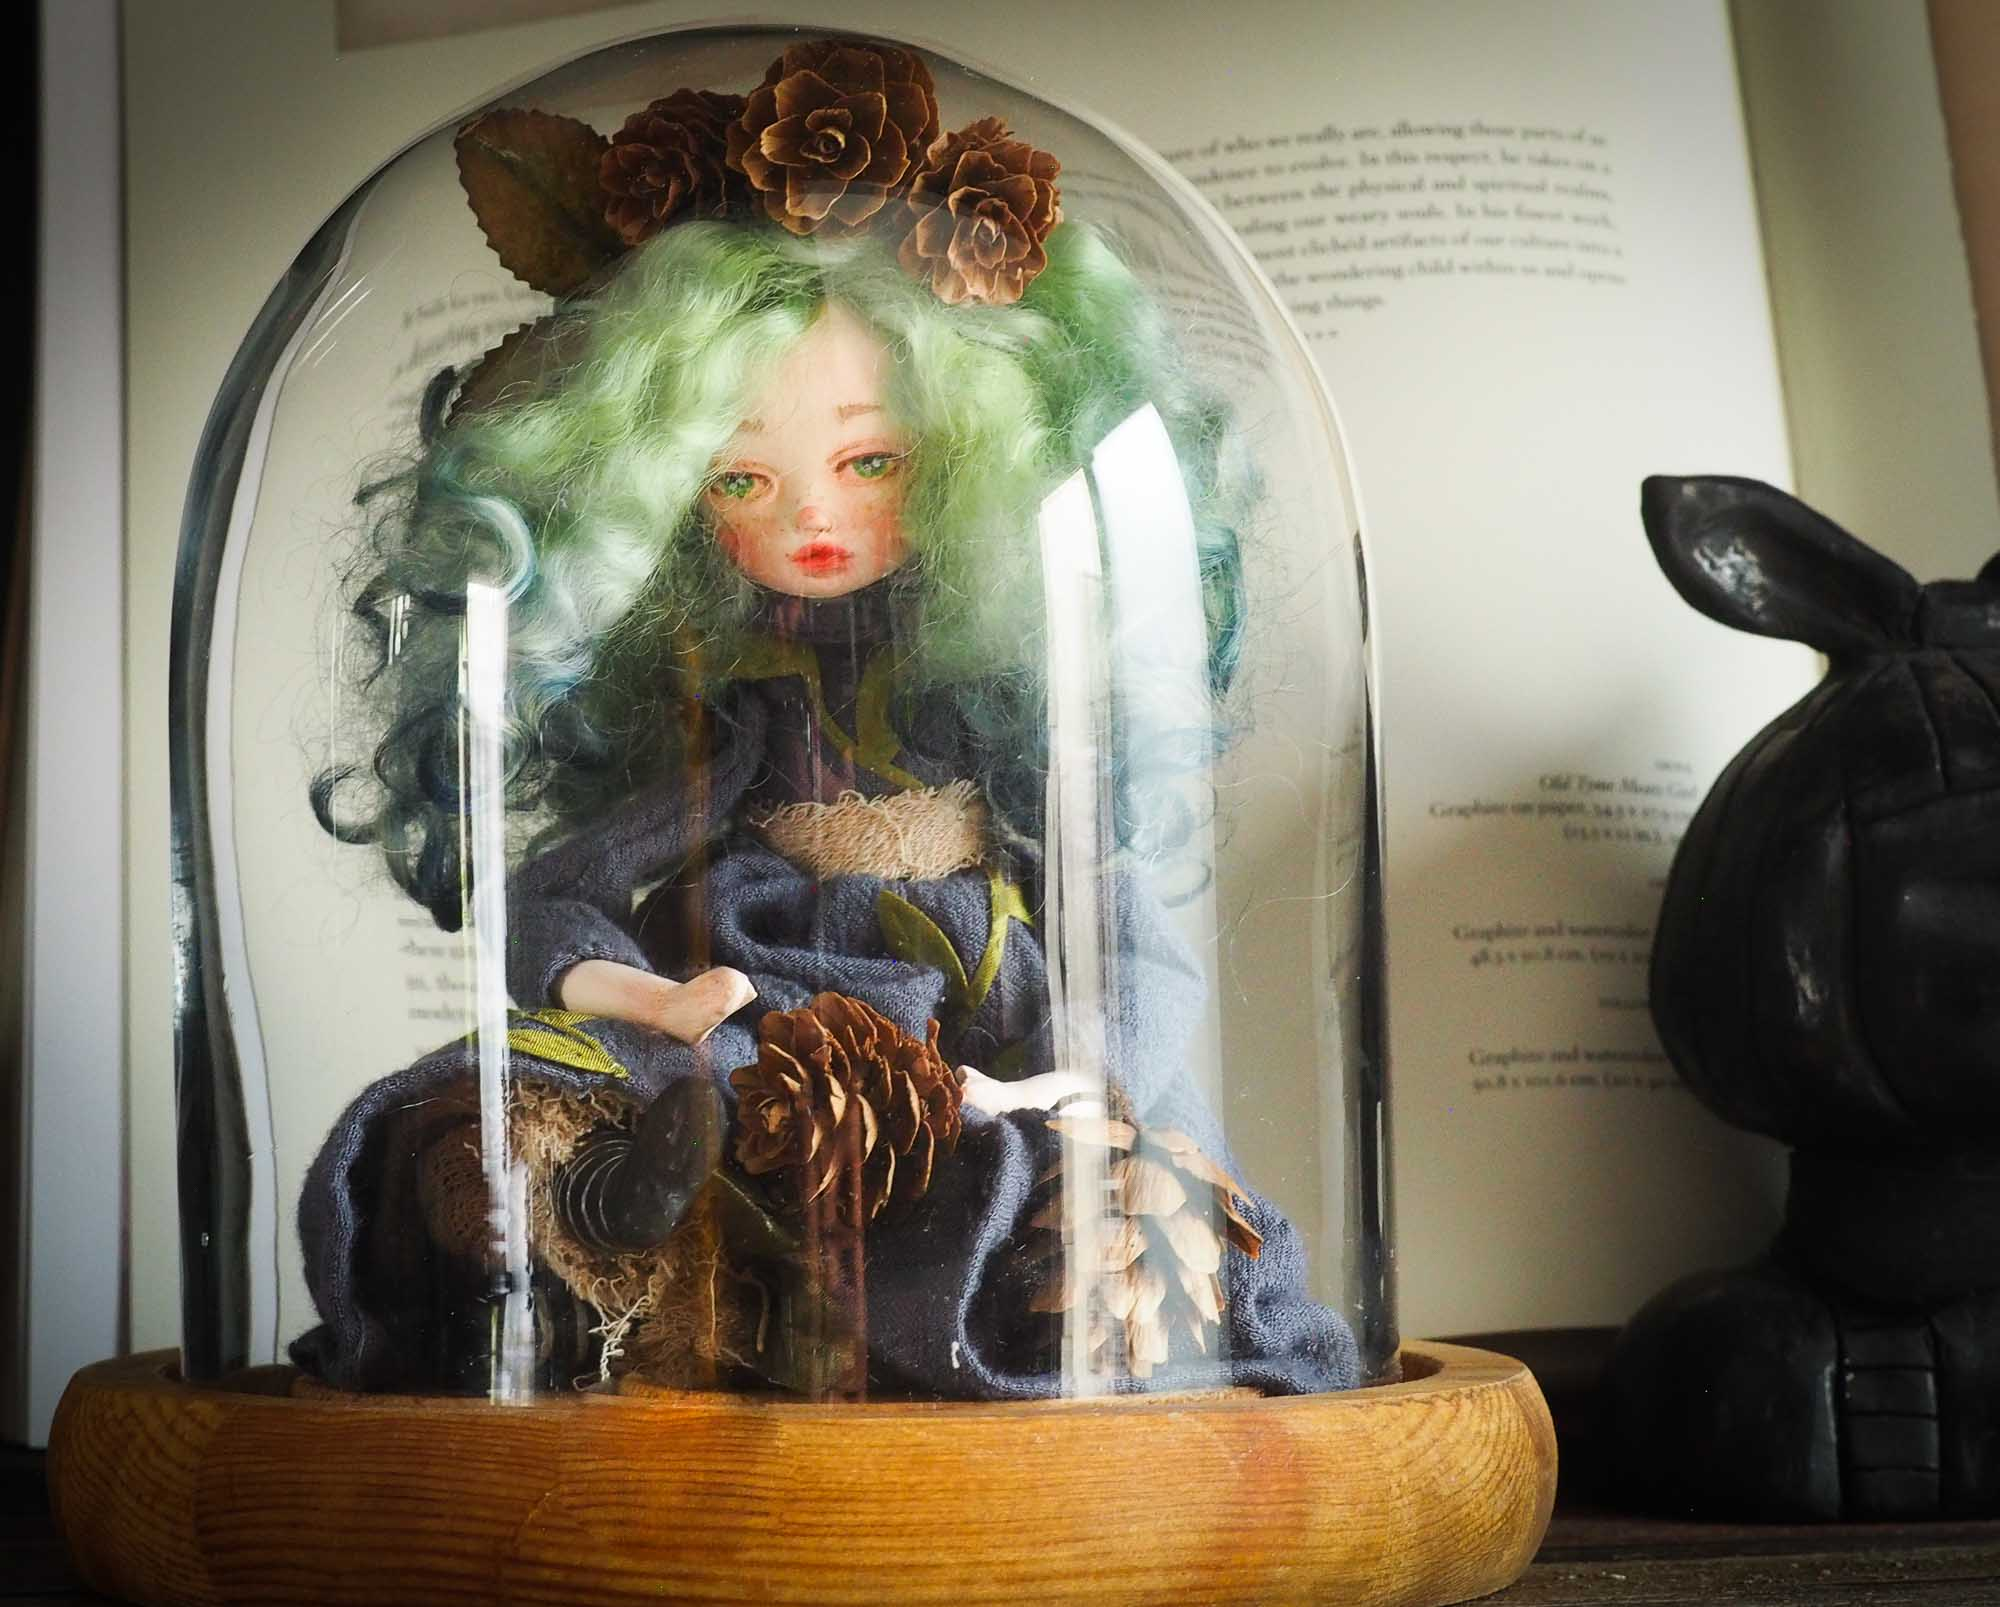 Original Danita Art handamde doll. Gaia mother nature is represented on this handmade figurine with pine cones, leaves and amazing details on her face and eyes. It is a perfect fantasy figurine gift.